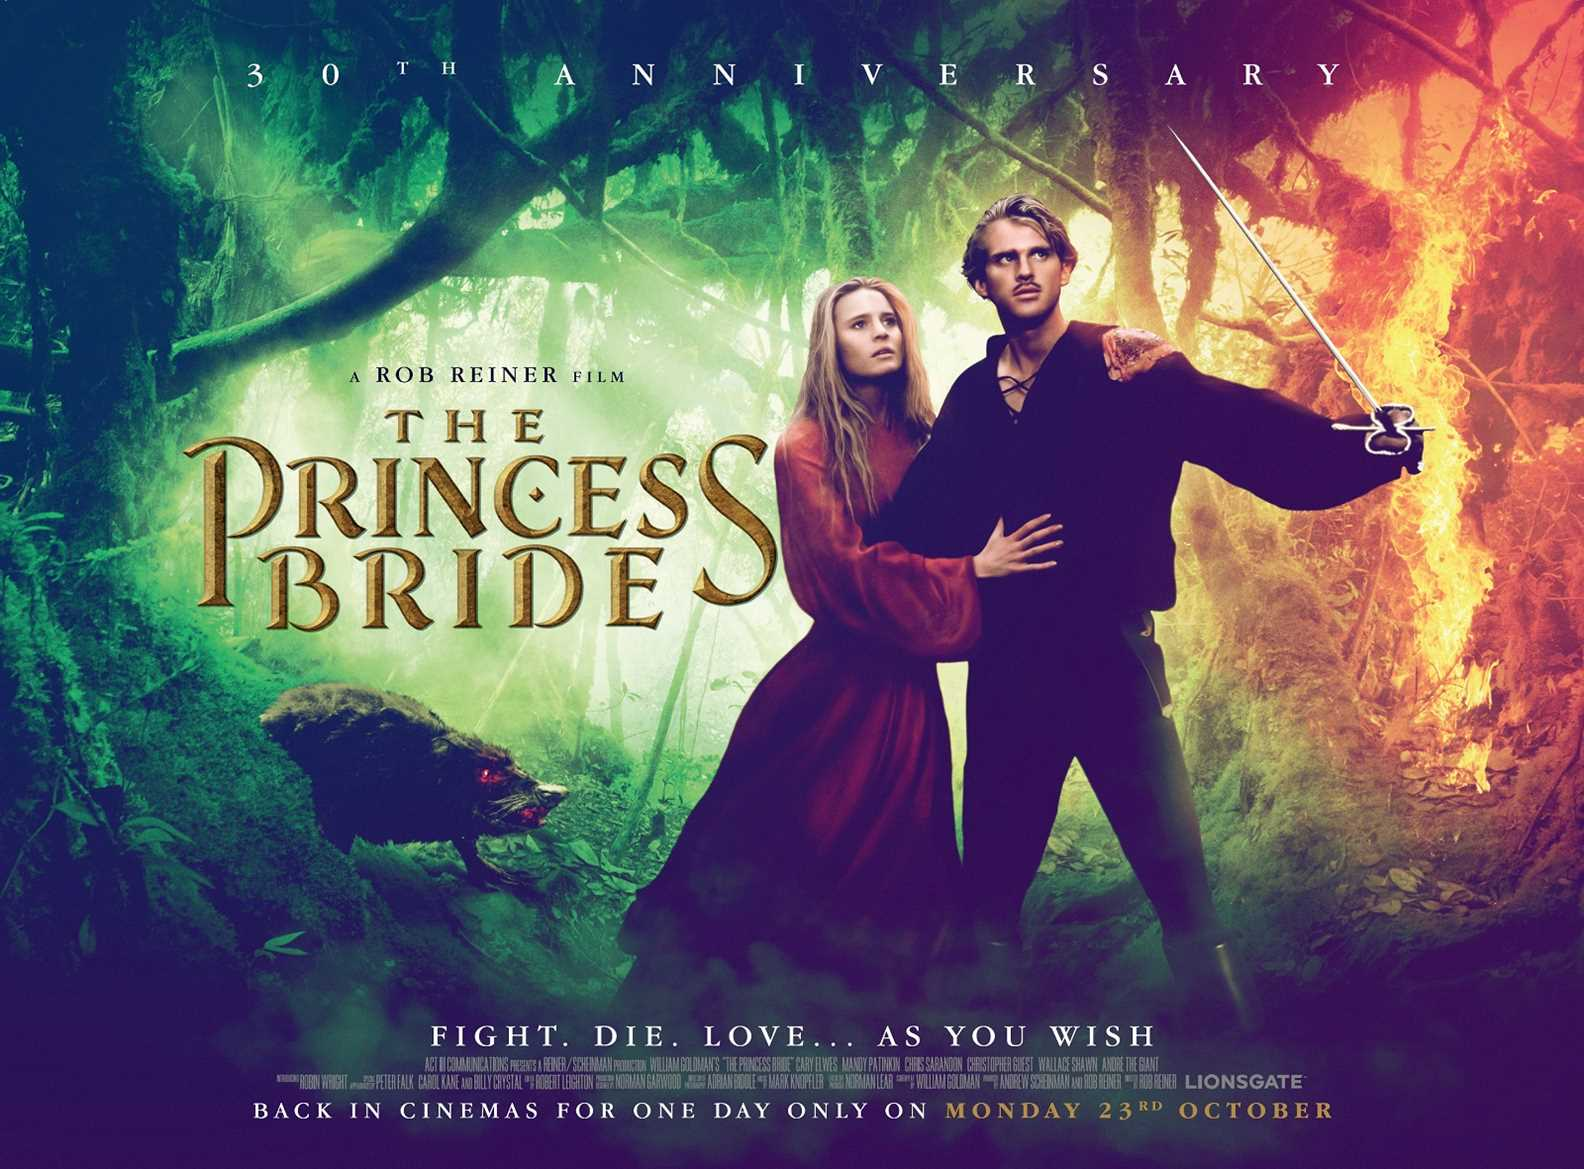 the princess bride movie review For anyone born in the 1980s to be unfamiliar with the princess bride is, well, inconceivable a cult classic, it's perhaps the second most quoted film of all time.